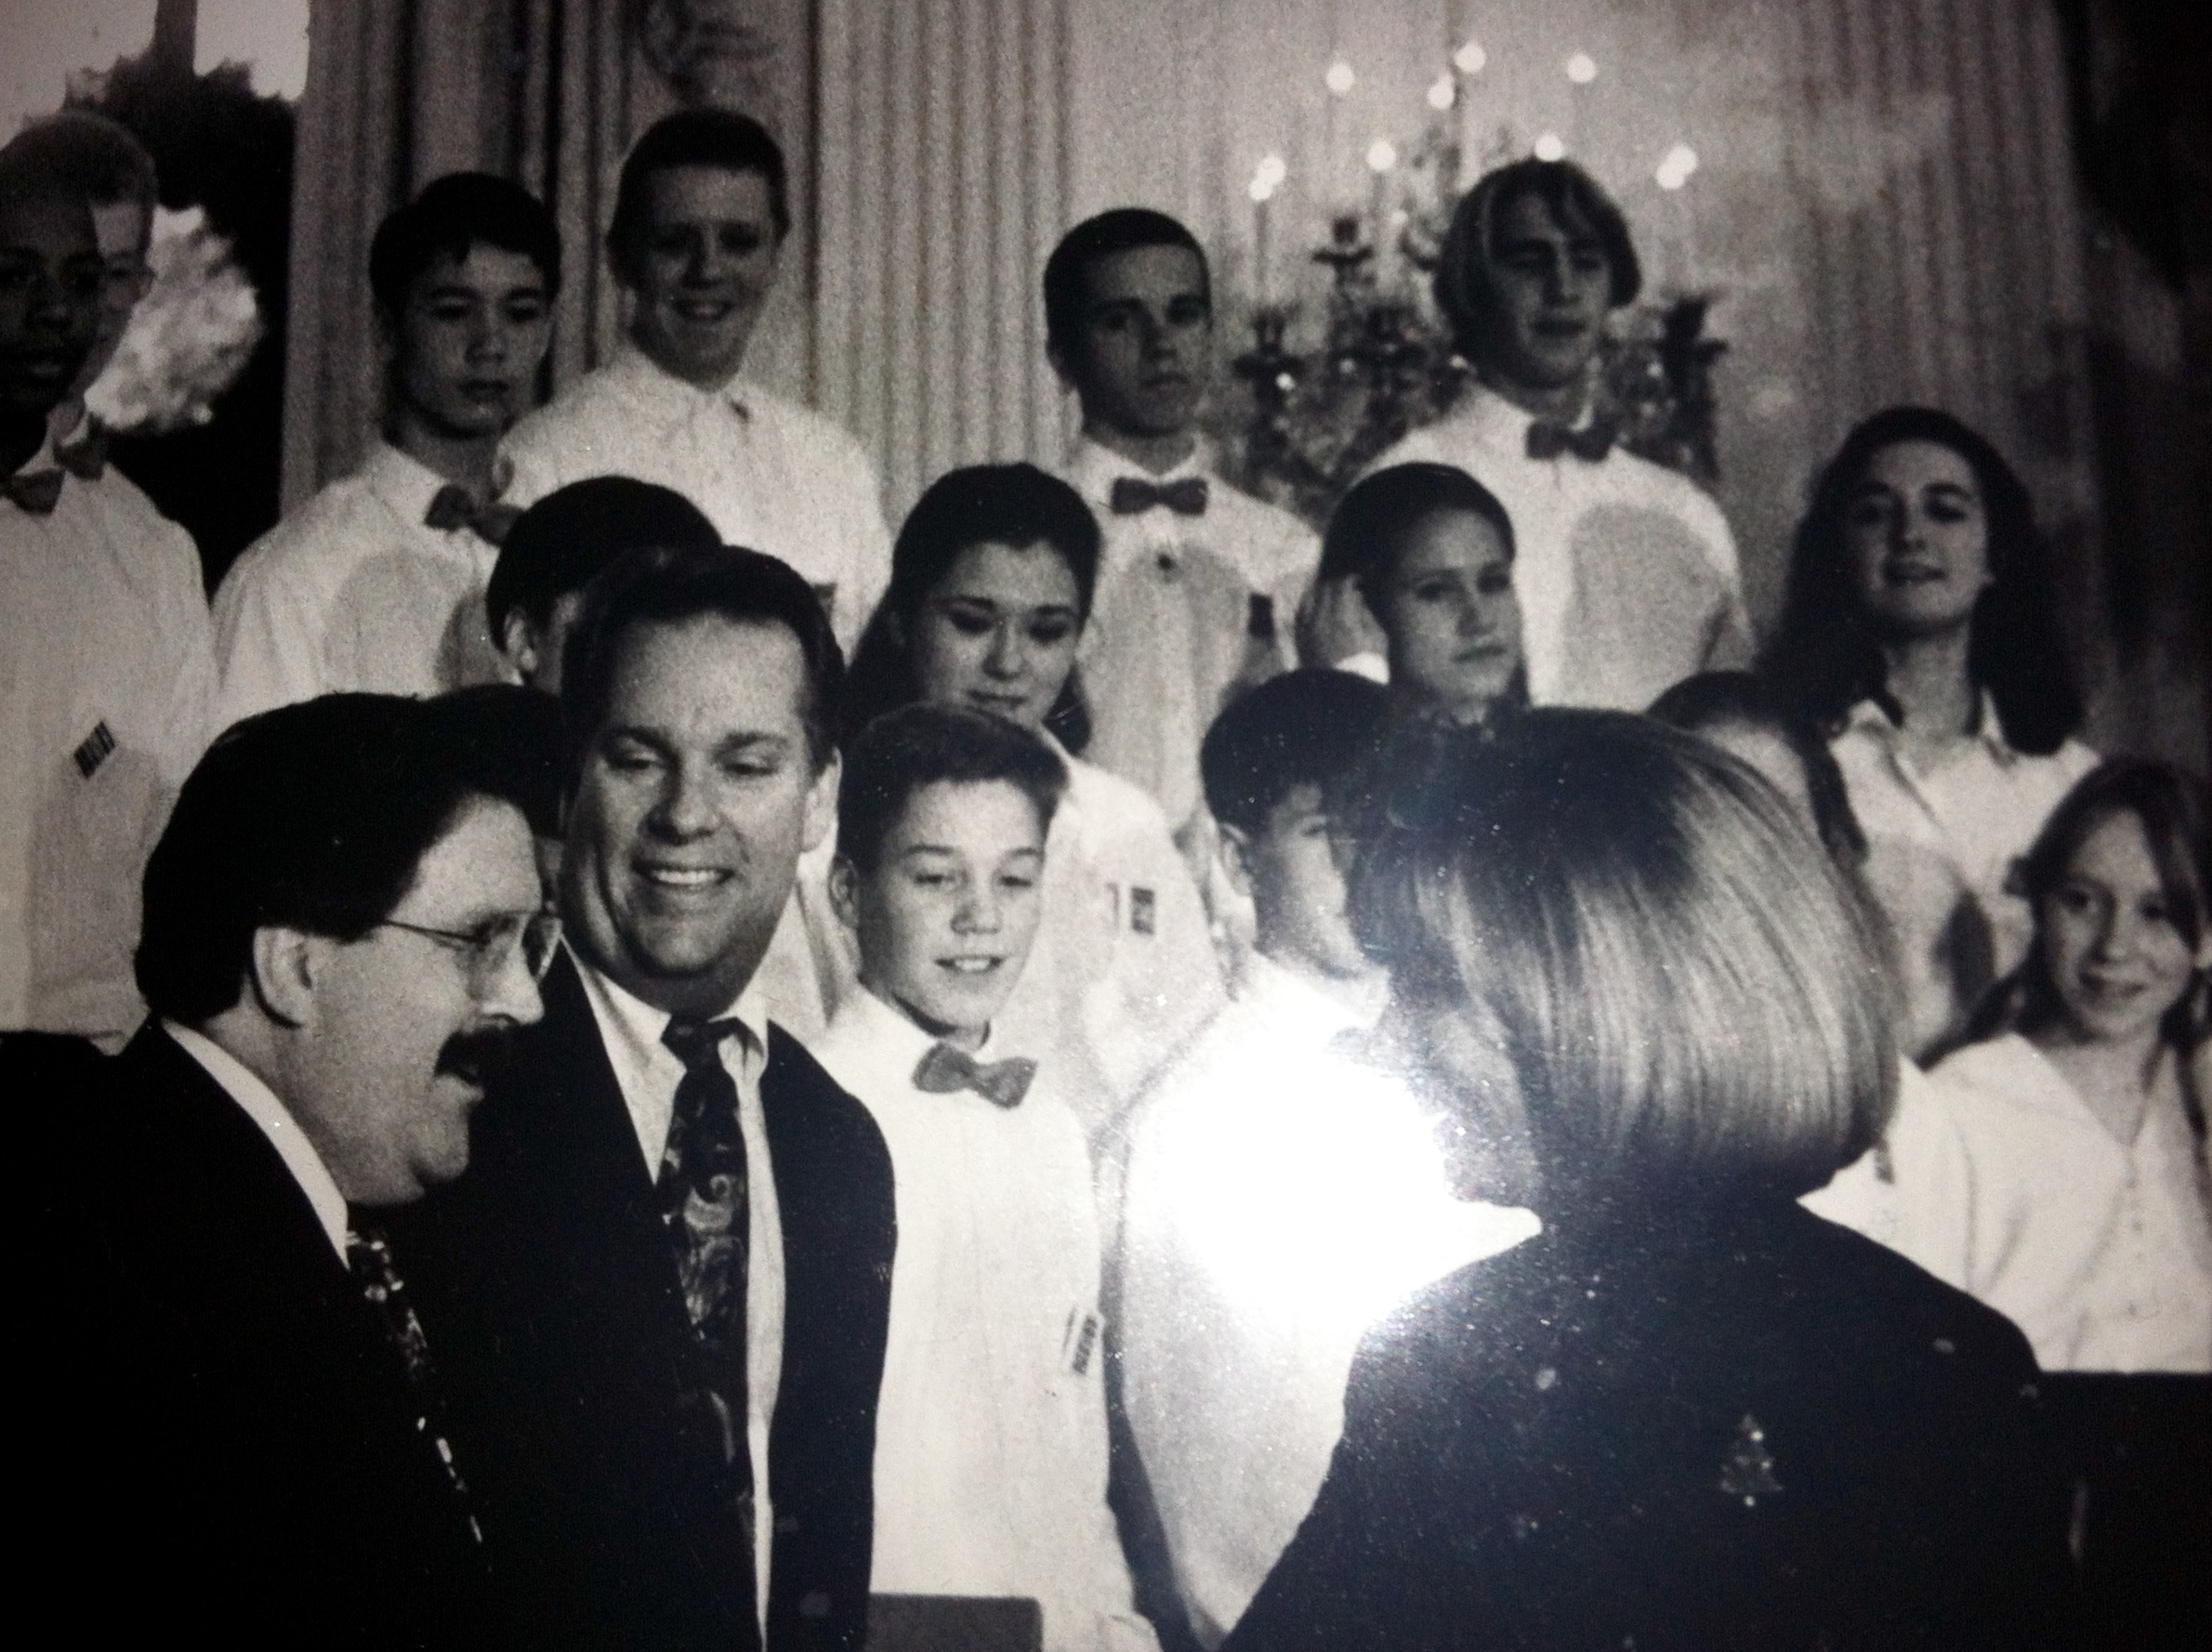 Thomas Pedersen speaks to pianist Keith Thompson and First Lady Hillary Clinton at Christmas At The White House in December 1993.